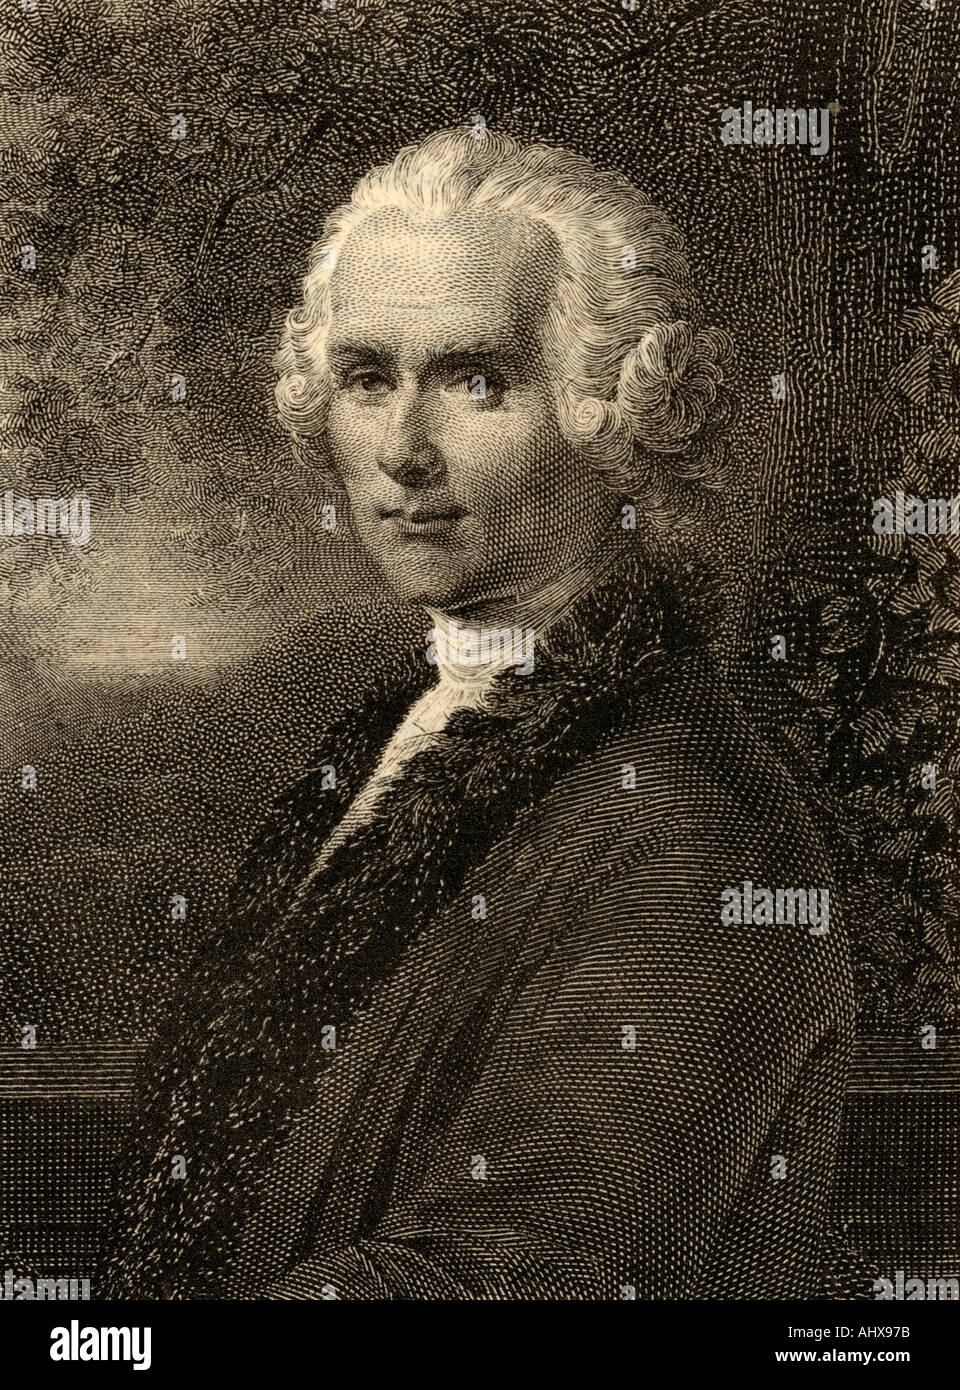 Jean-Jacques Rousseau. 1712 - 1778. Swiss philosopher. - Stock Image